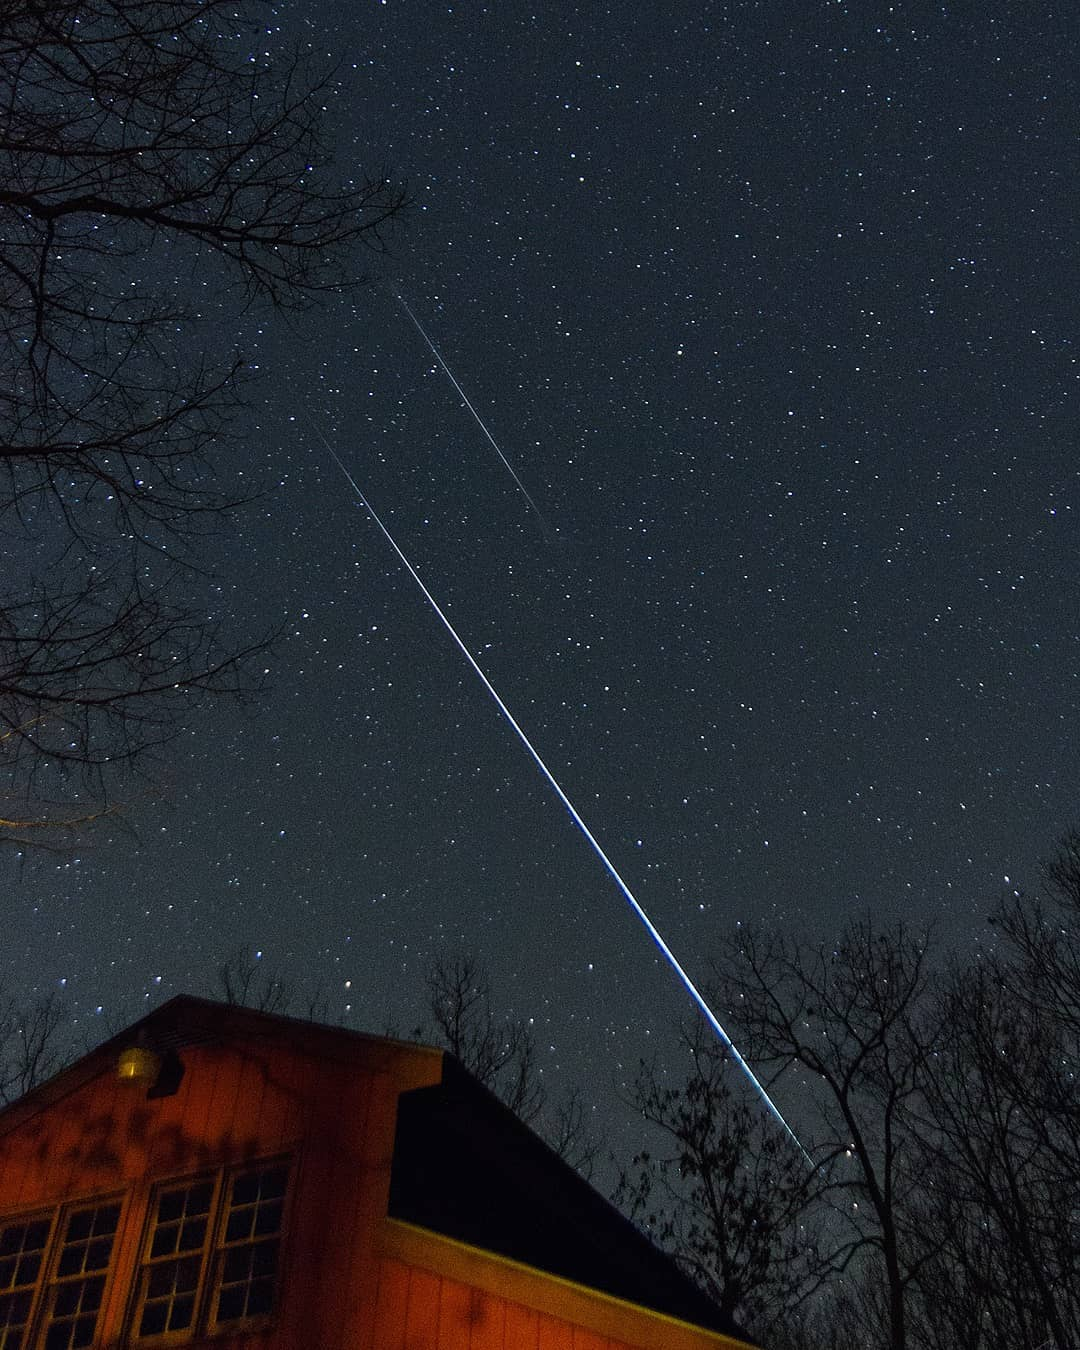 How to Watch the Shooting Stars Online